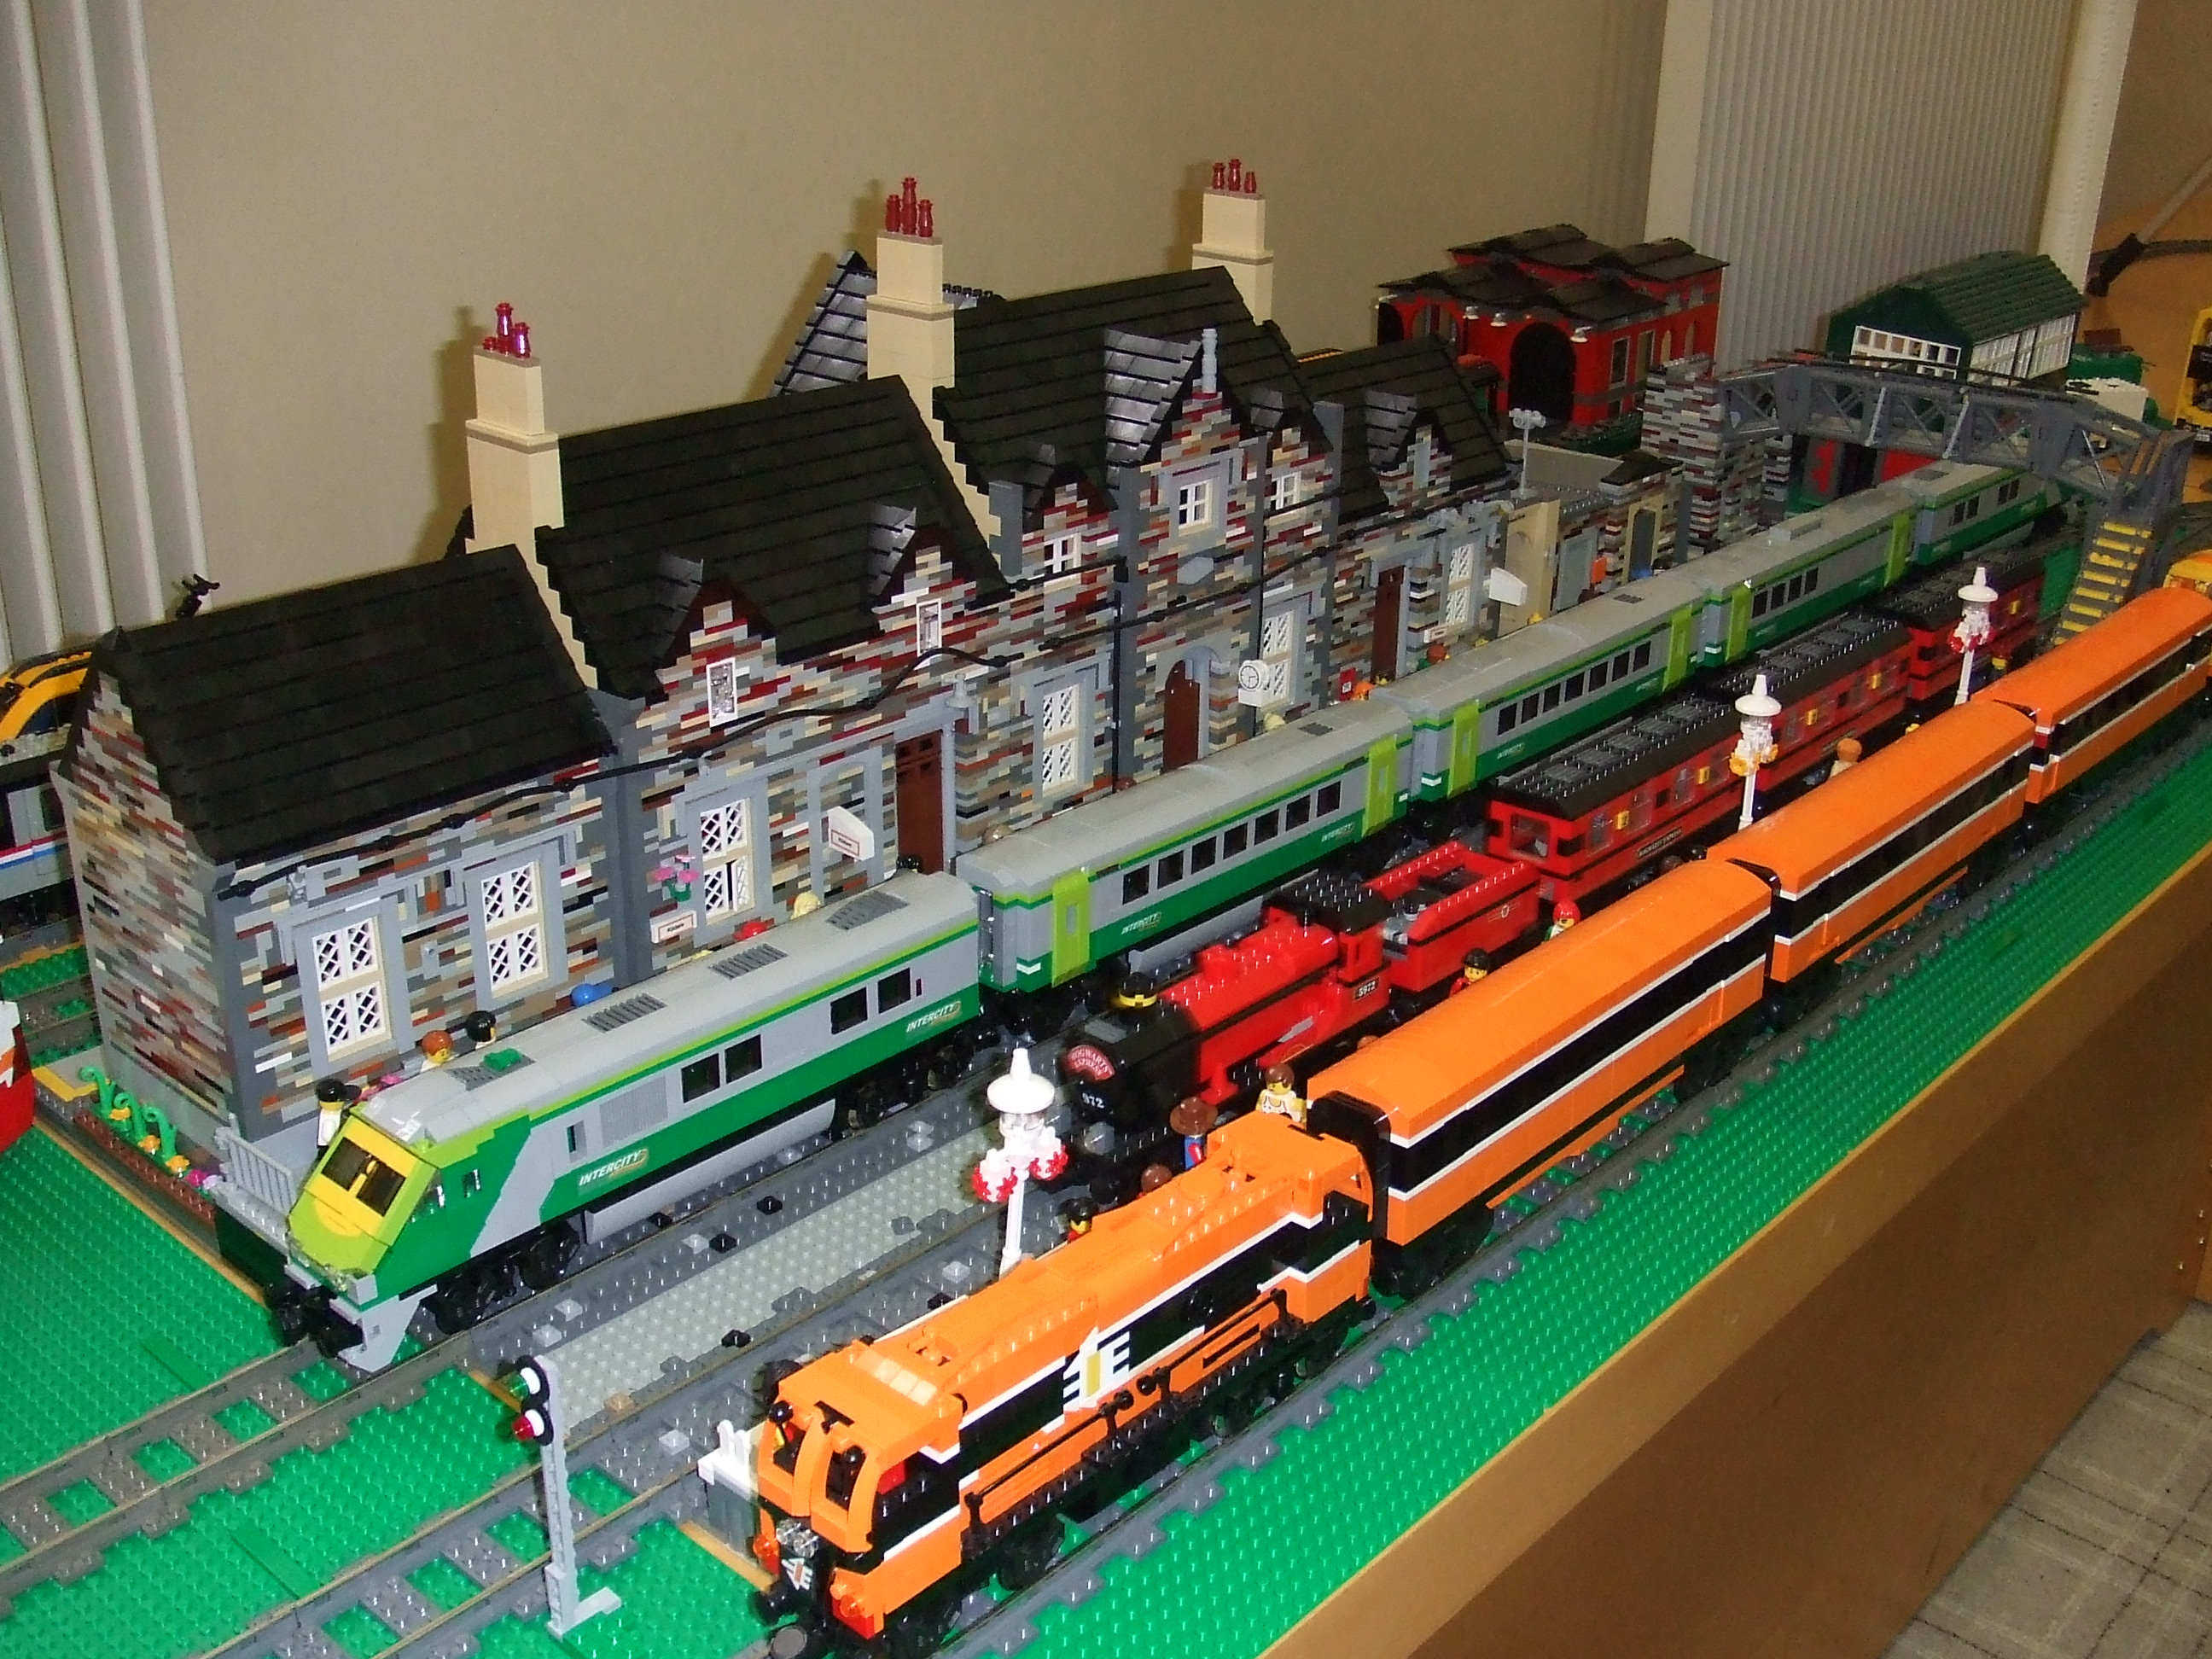 Birr Library Lego Exhilbition - Kildare Train Station by Breda Fennell and David Fennell 2